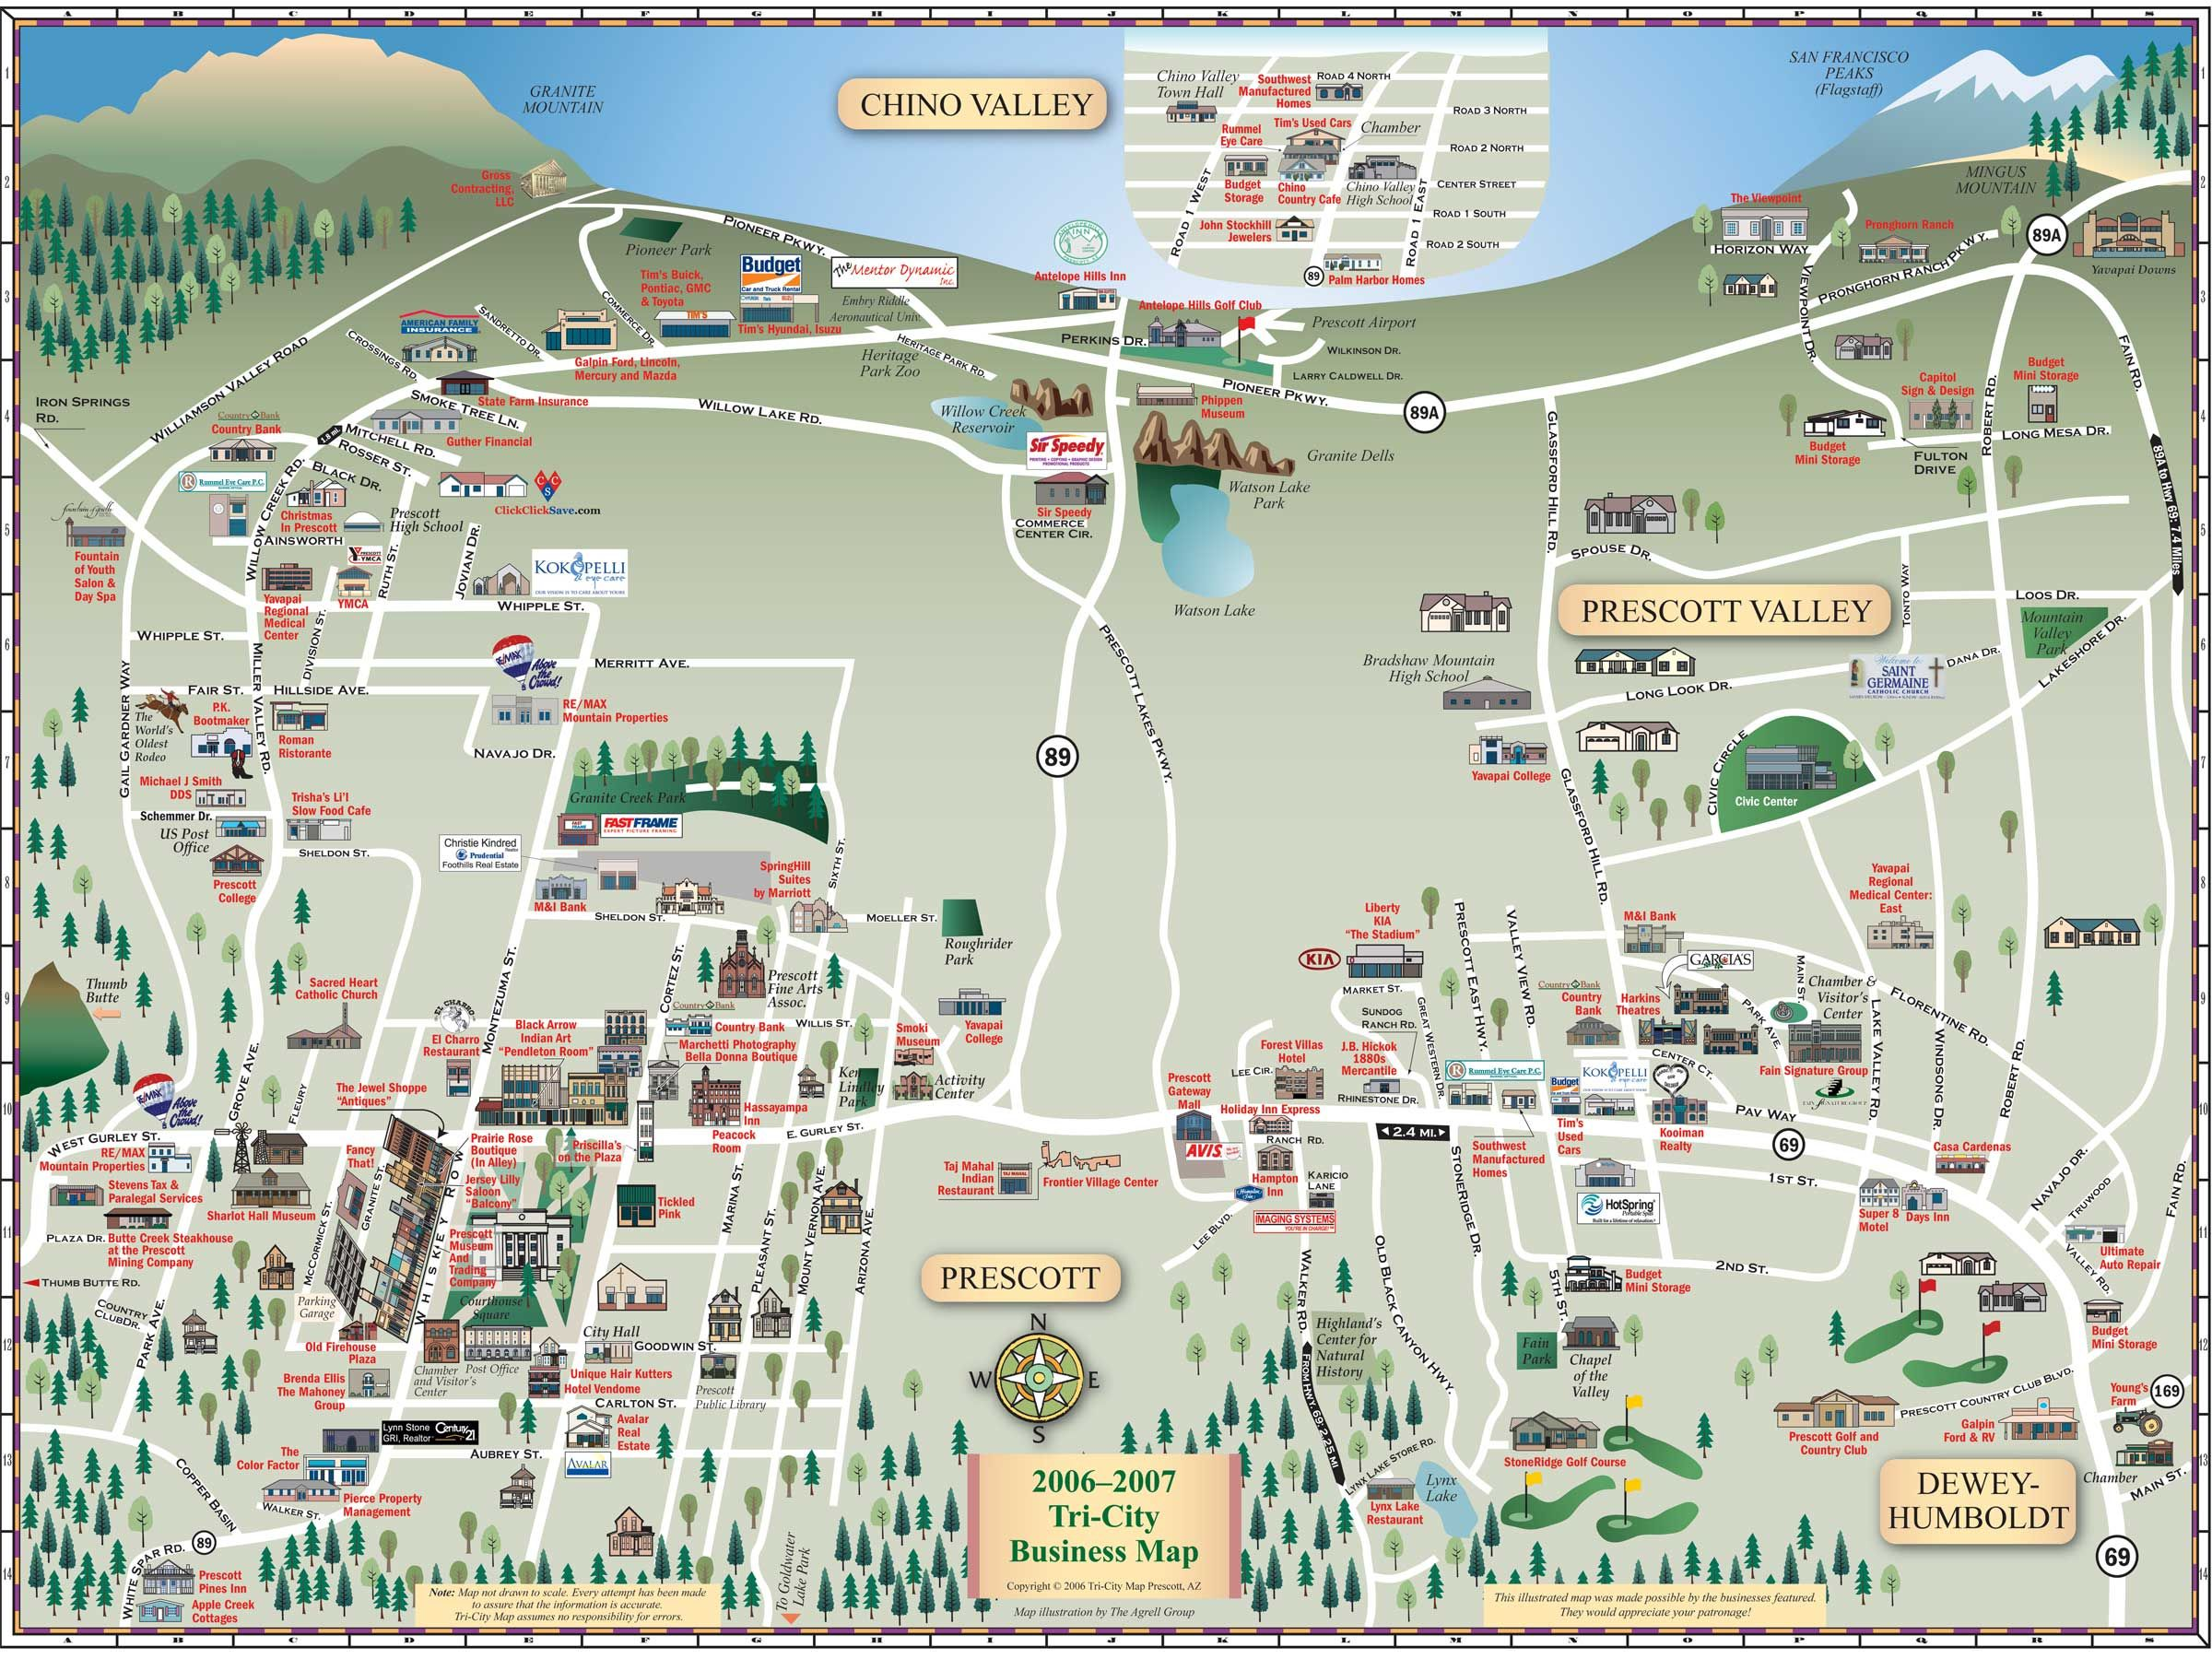 Map Of Arizona Prescott.Prescott Tourist Map Prescott Arizona Mappery Arizona In 2019